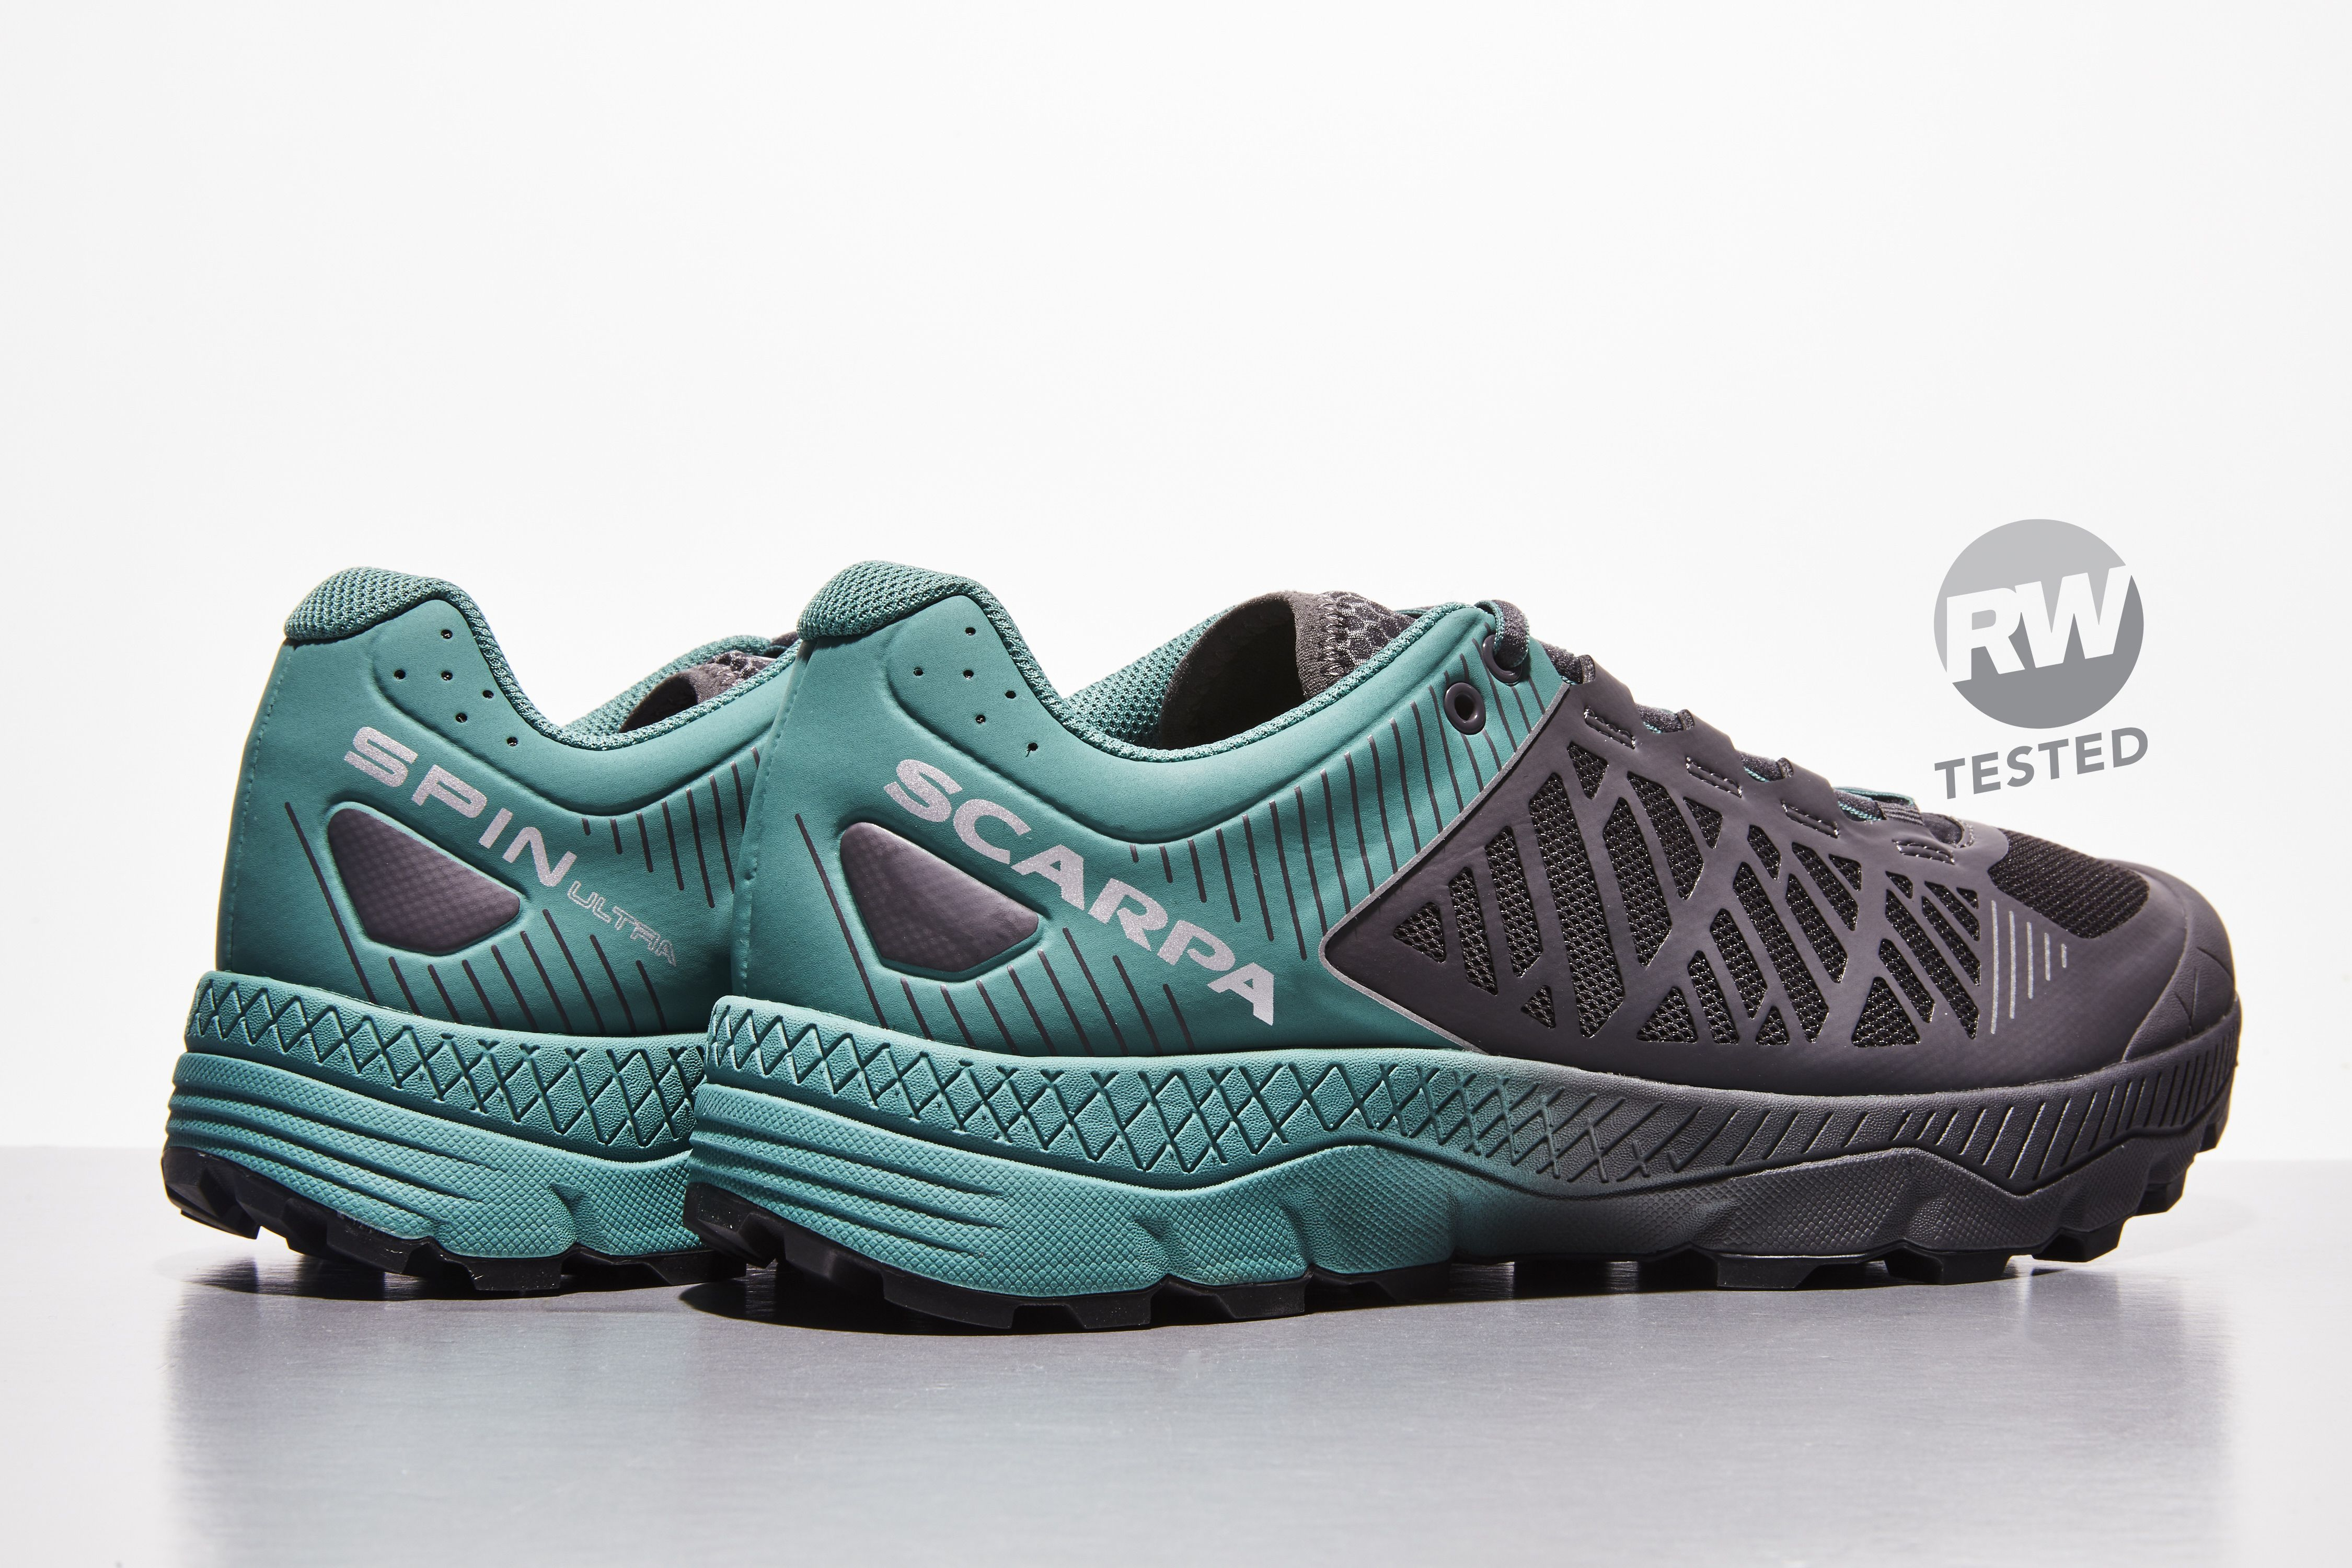 The Scarpa Spin Ultra Is the Complete Trail Package